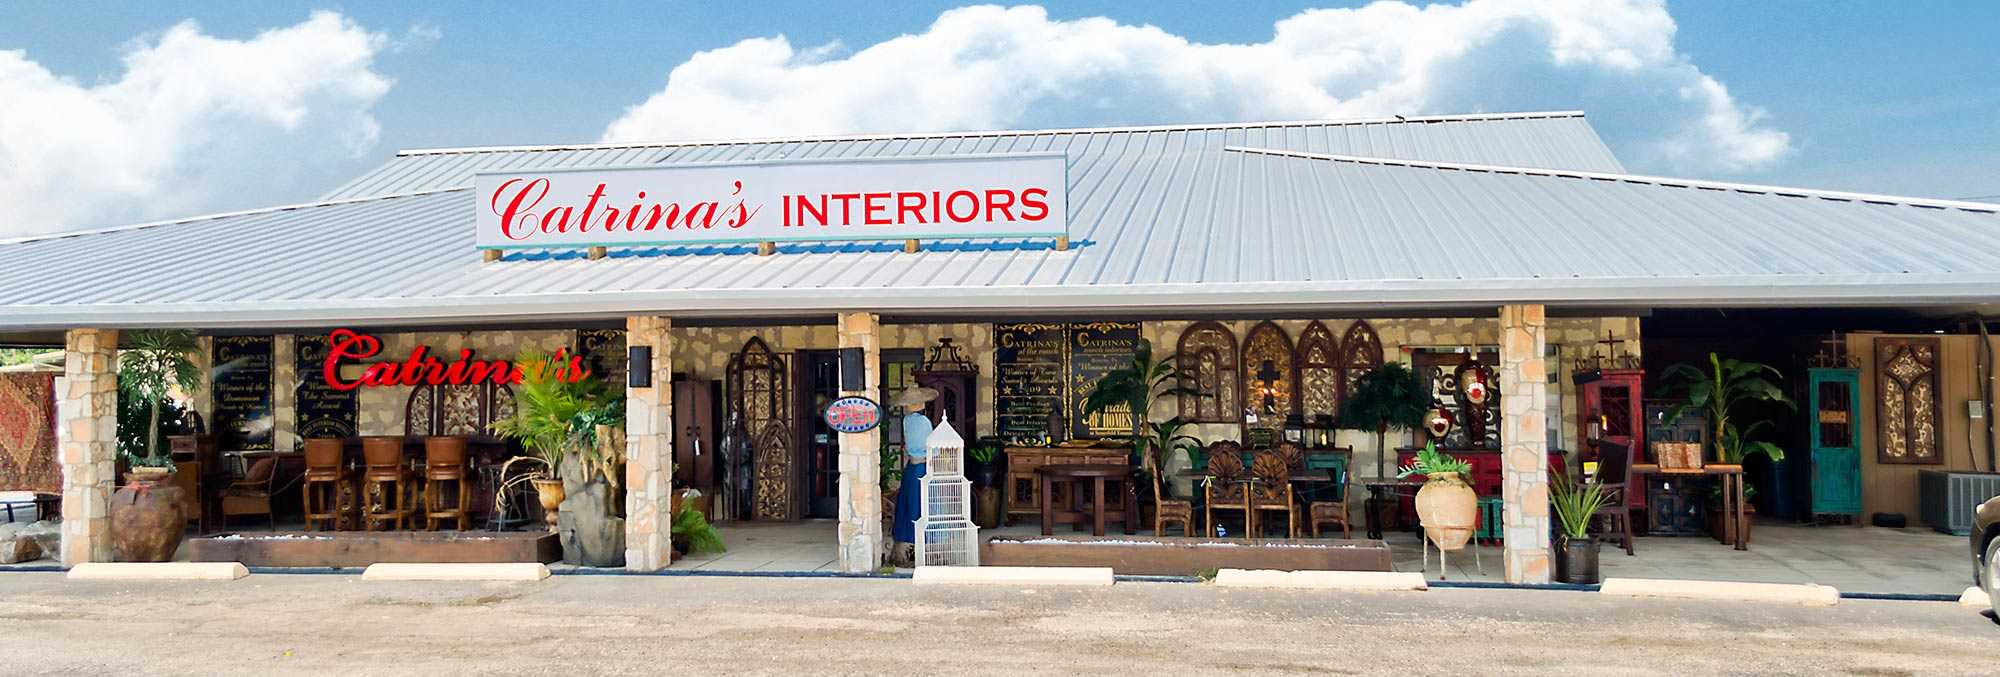 Catrina's Interiors 32840 IH 10 West, Boerne, San Antonio, Texas: Telephone 830-331-9010